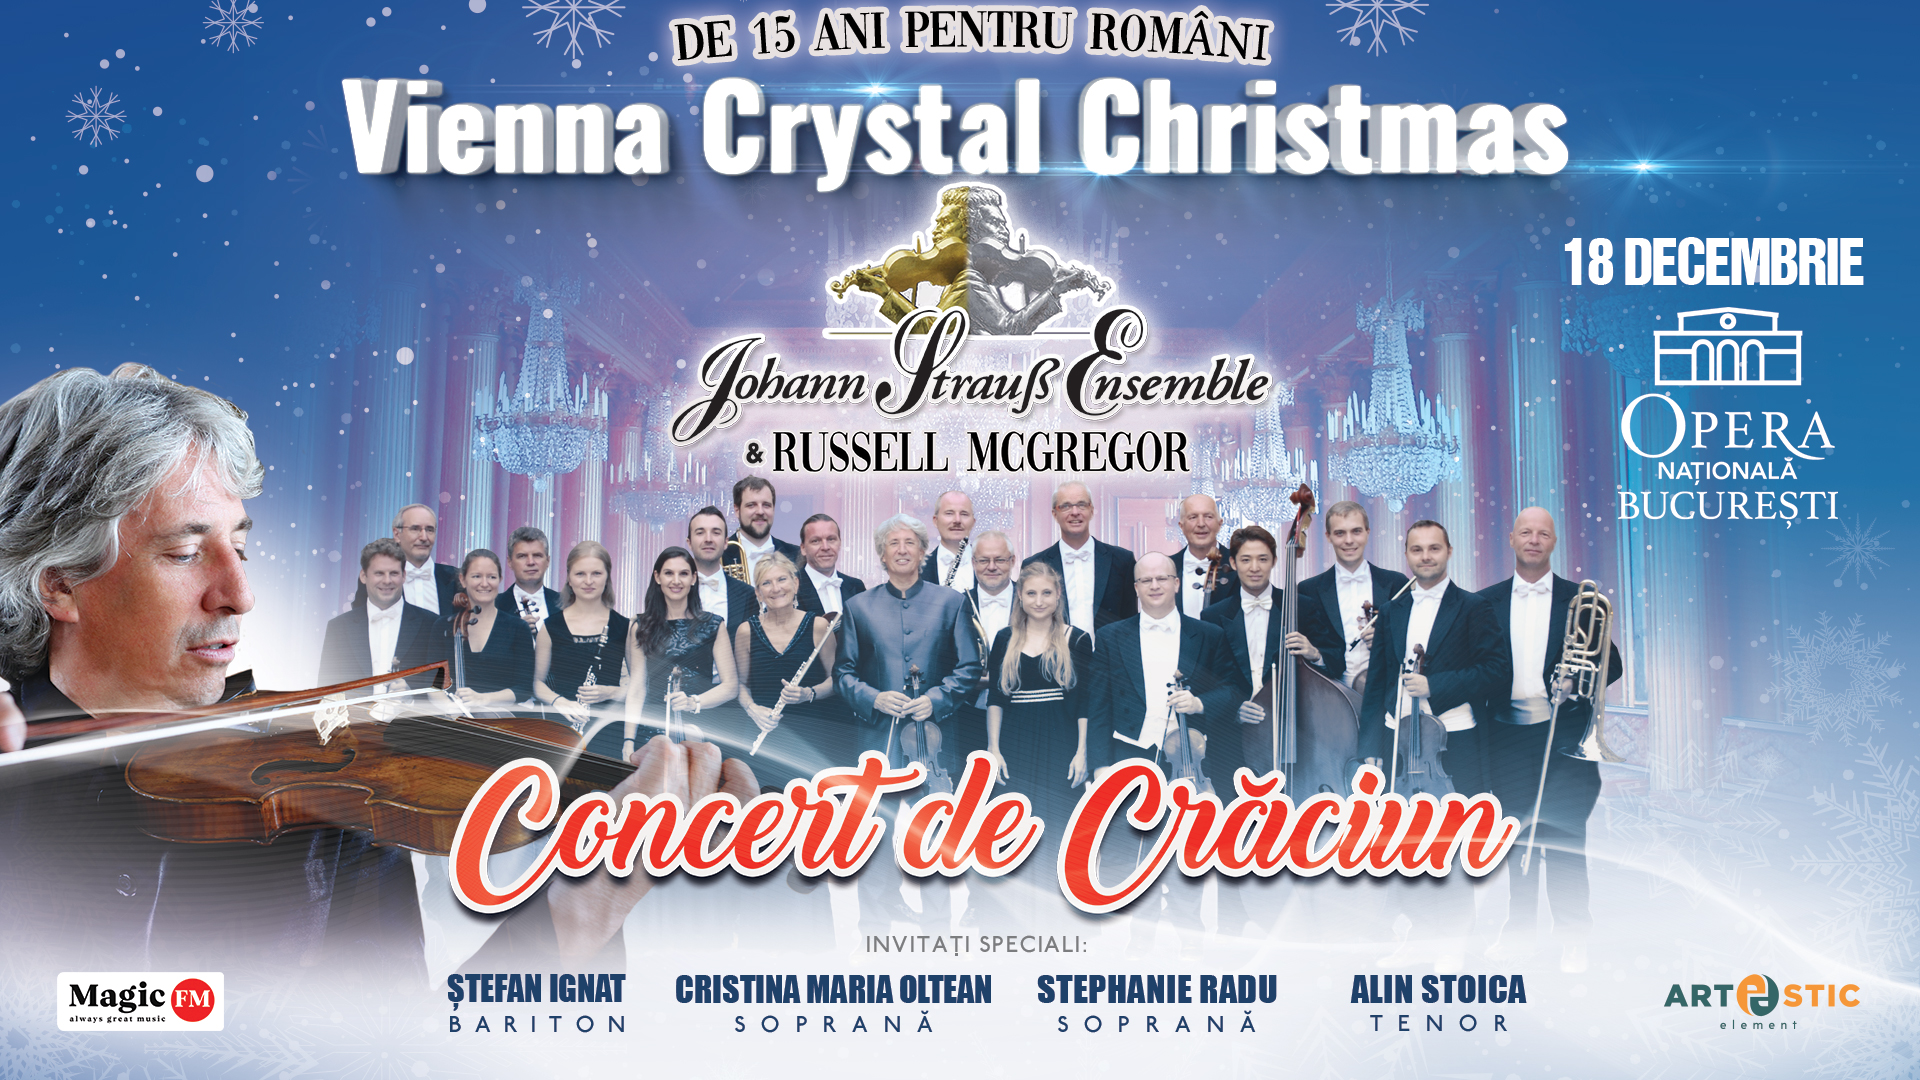 Johann Strauss Ensemble - Vienna Crystal Christmas